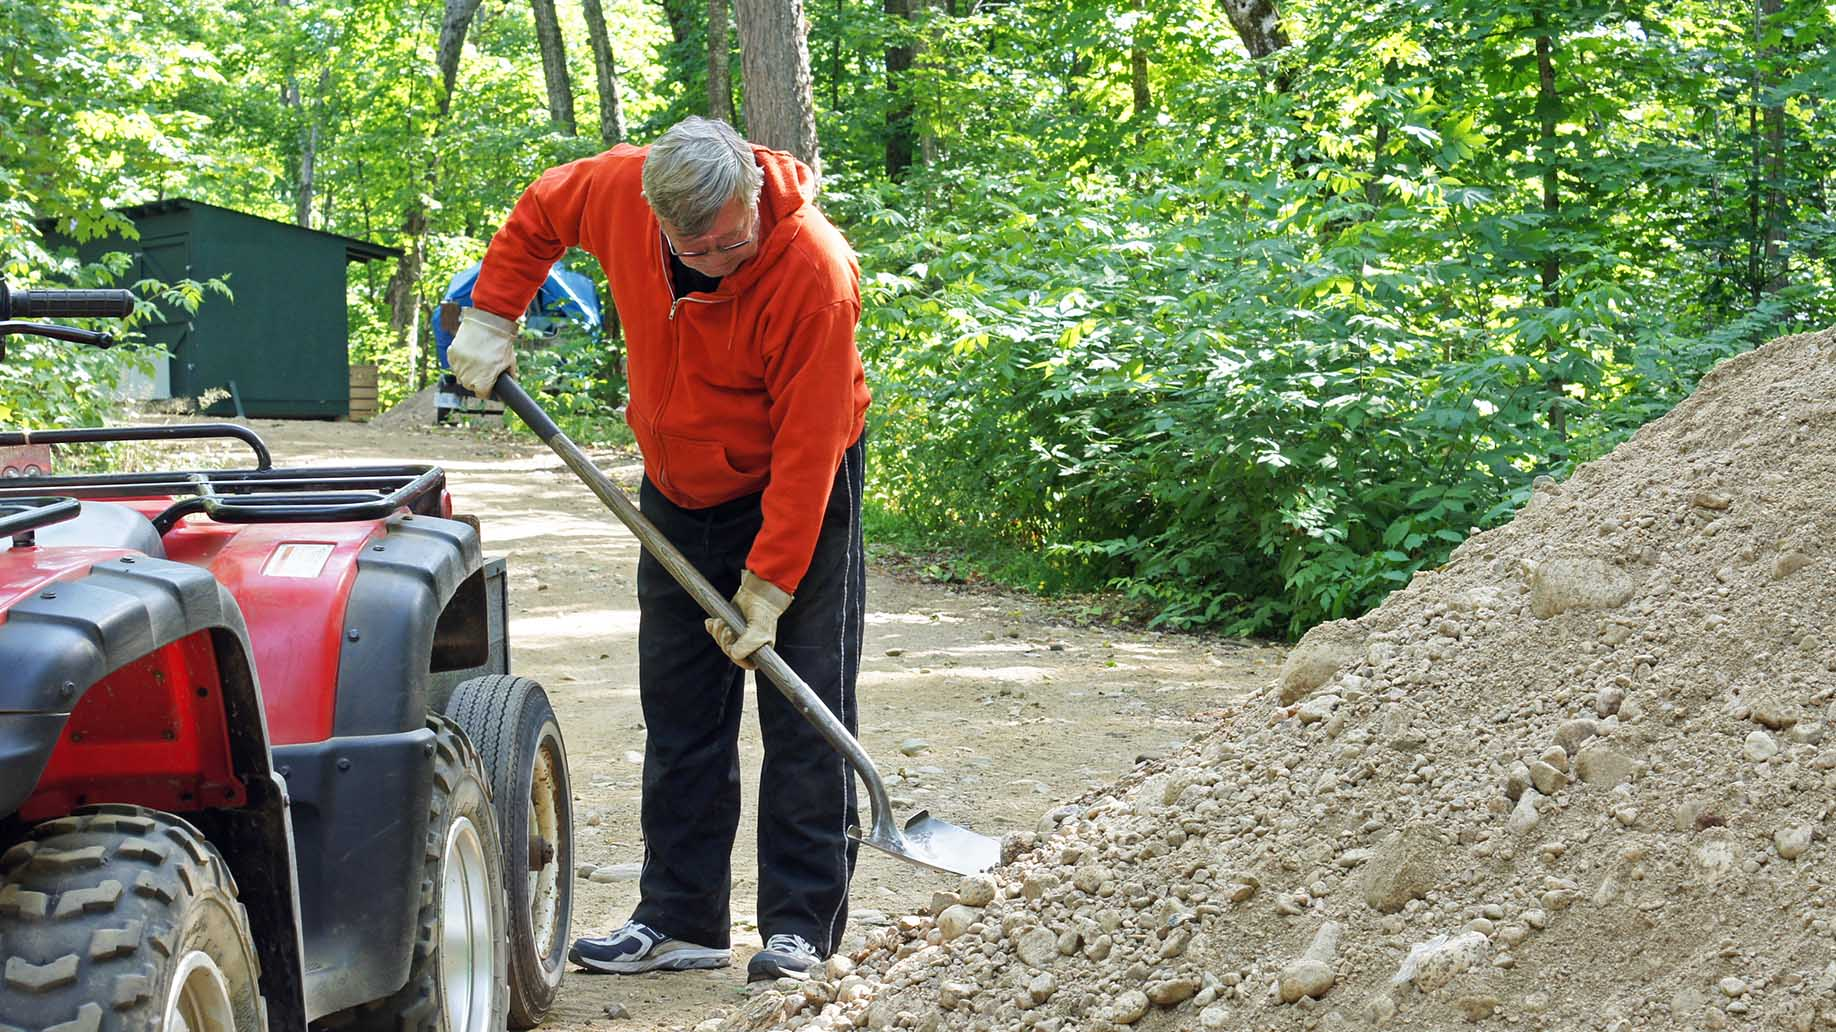 man works moving grave